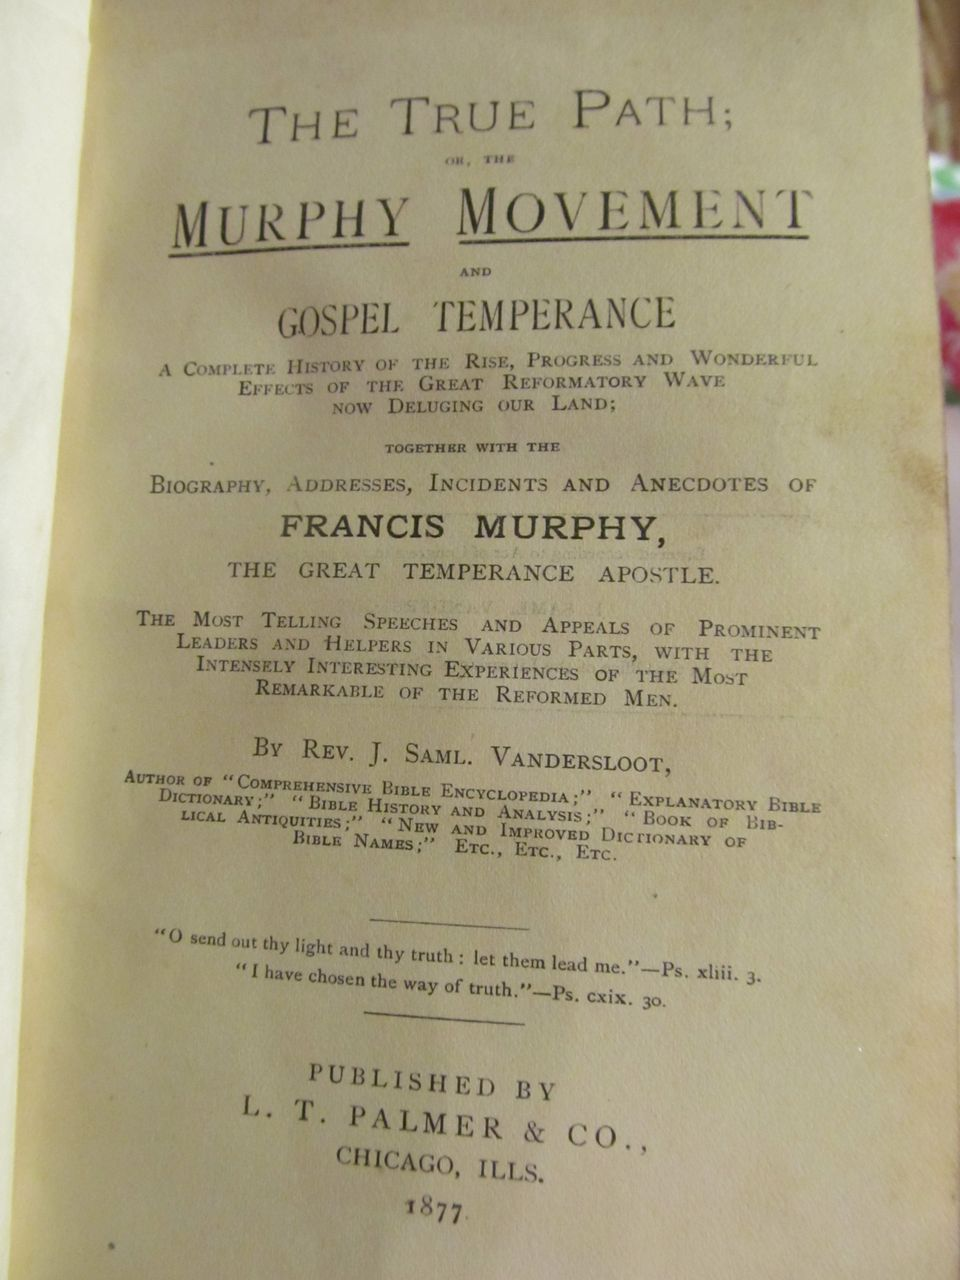 1877 The True Path of The Murphy Movement and Gospel Temperance by Rev J Saml Vandersloot, Publ L T Palmer & Co